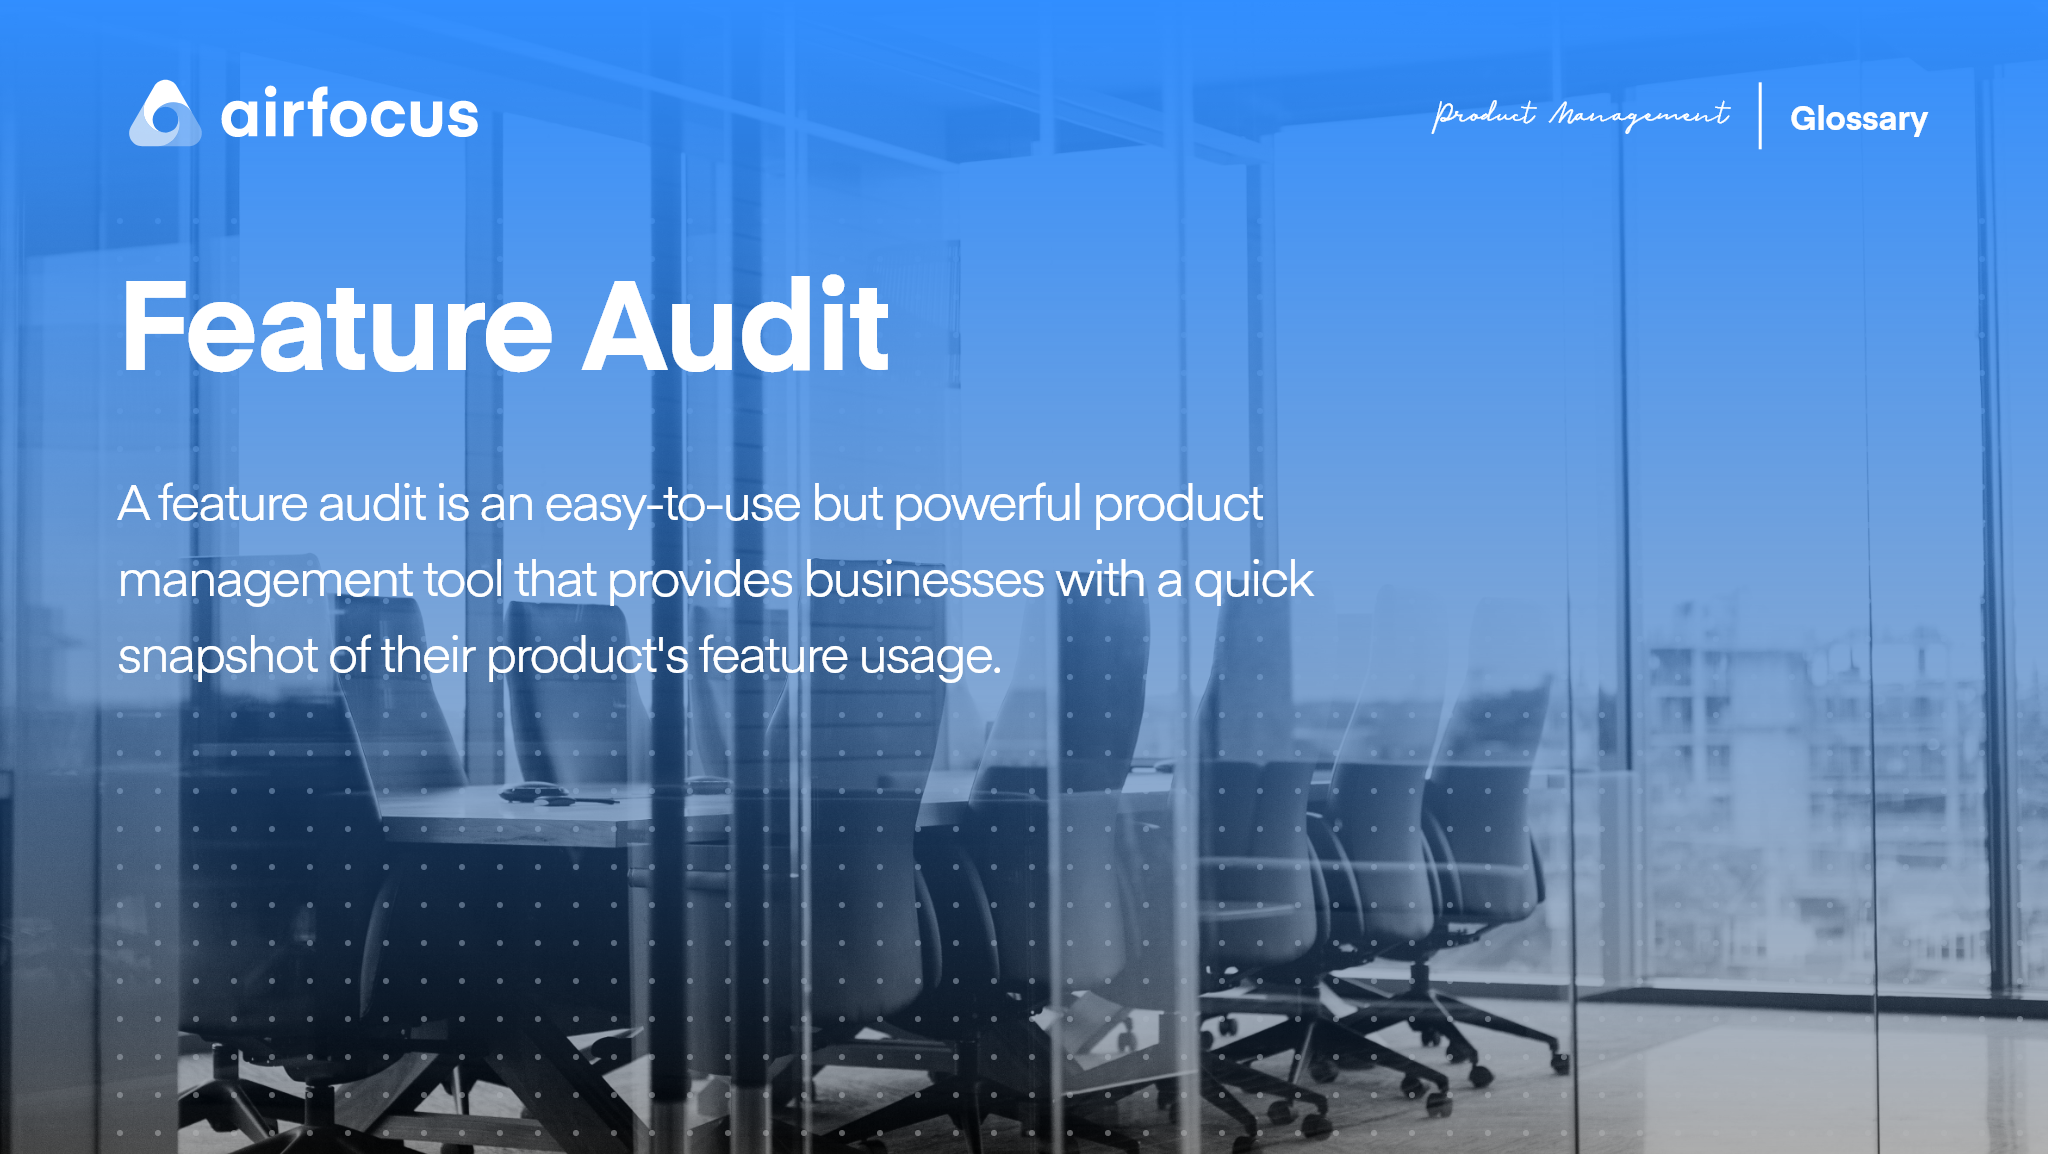 What is a Feature Audit?